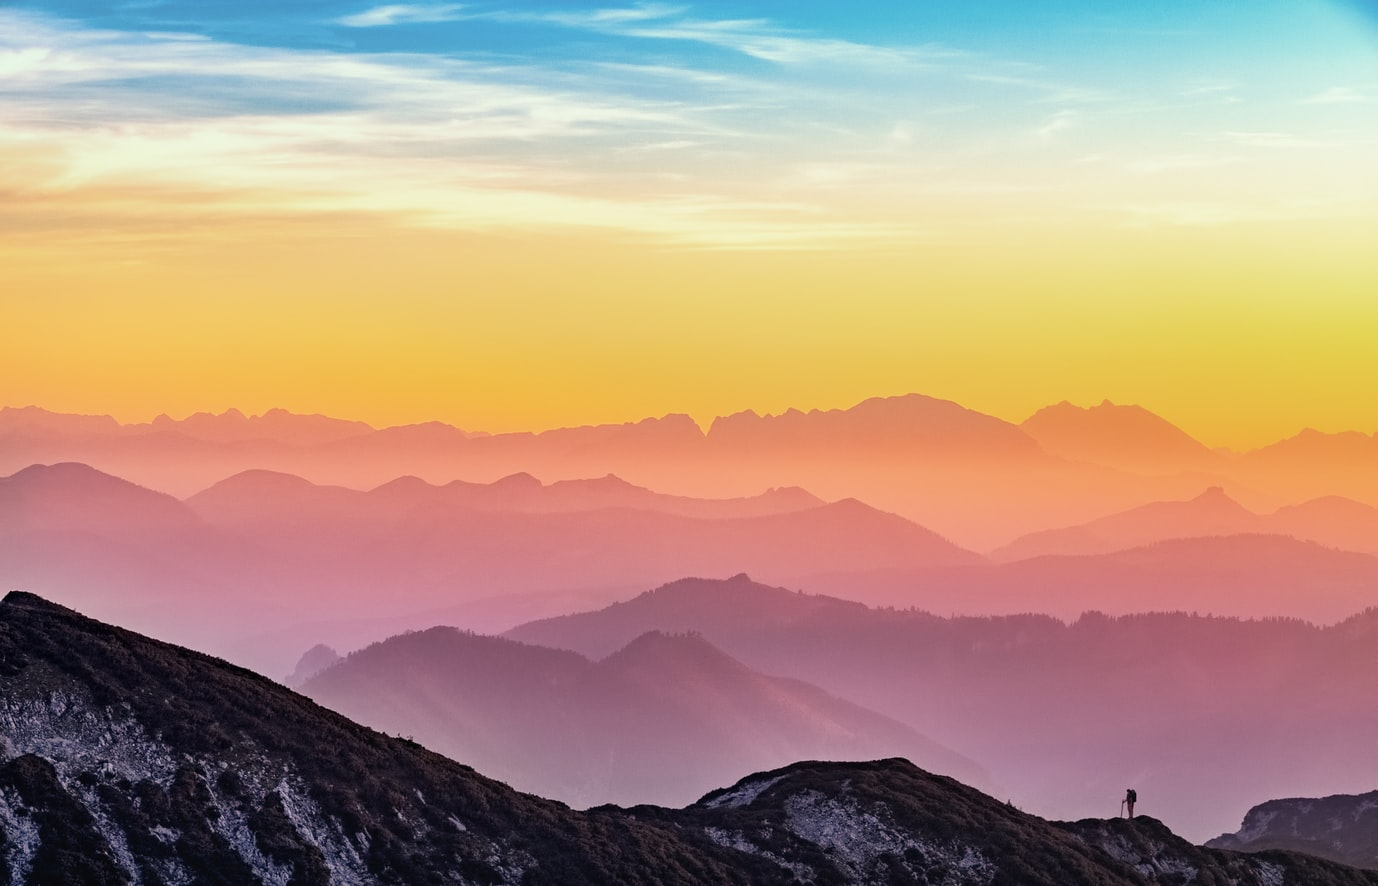 sunset or sunrise above the mountains, sustainable travel, eco friendly, responsible travel, 8 tips on how to choose an eco-friendly hotel, where to go, where to stay, tips, travel tips